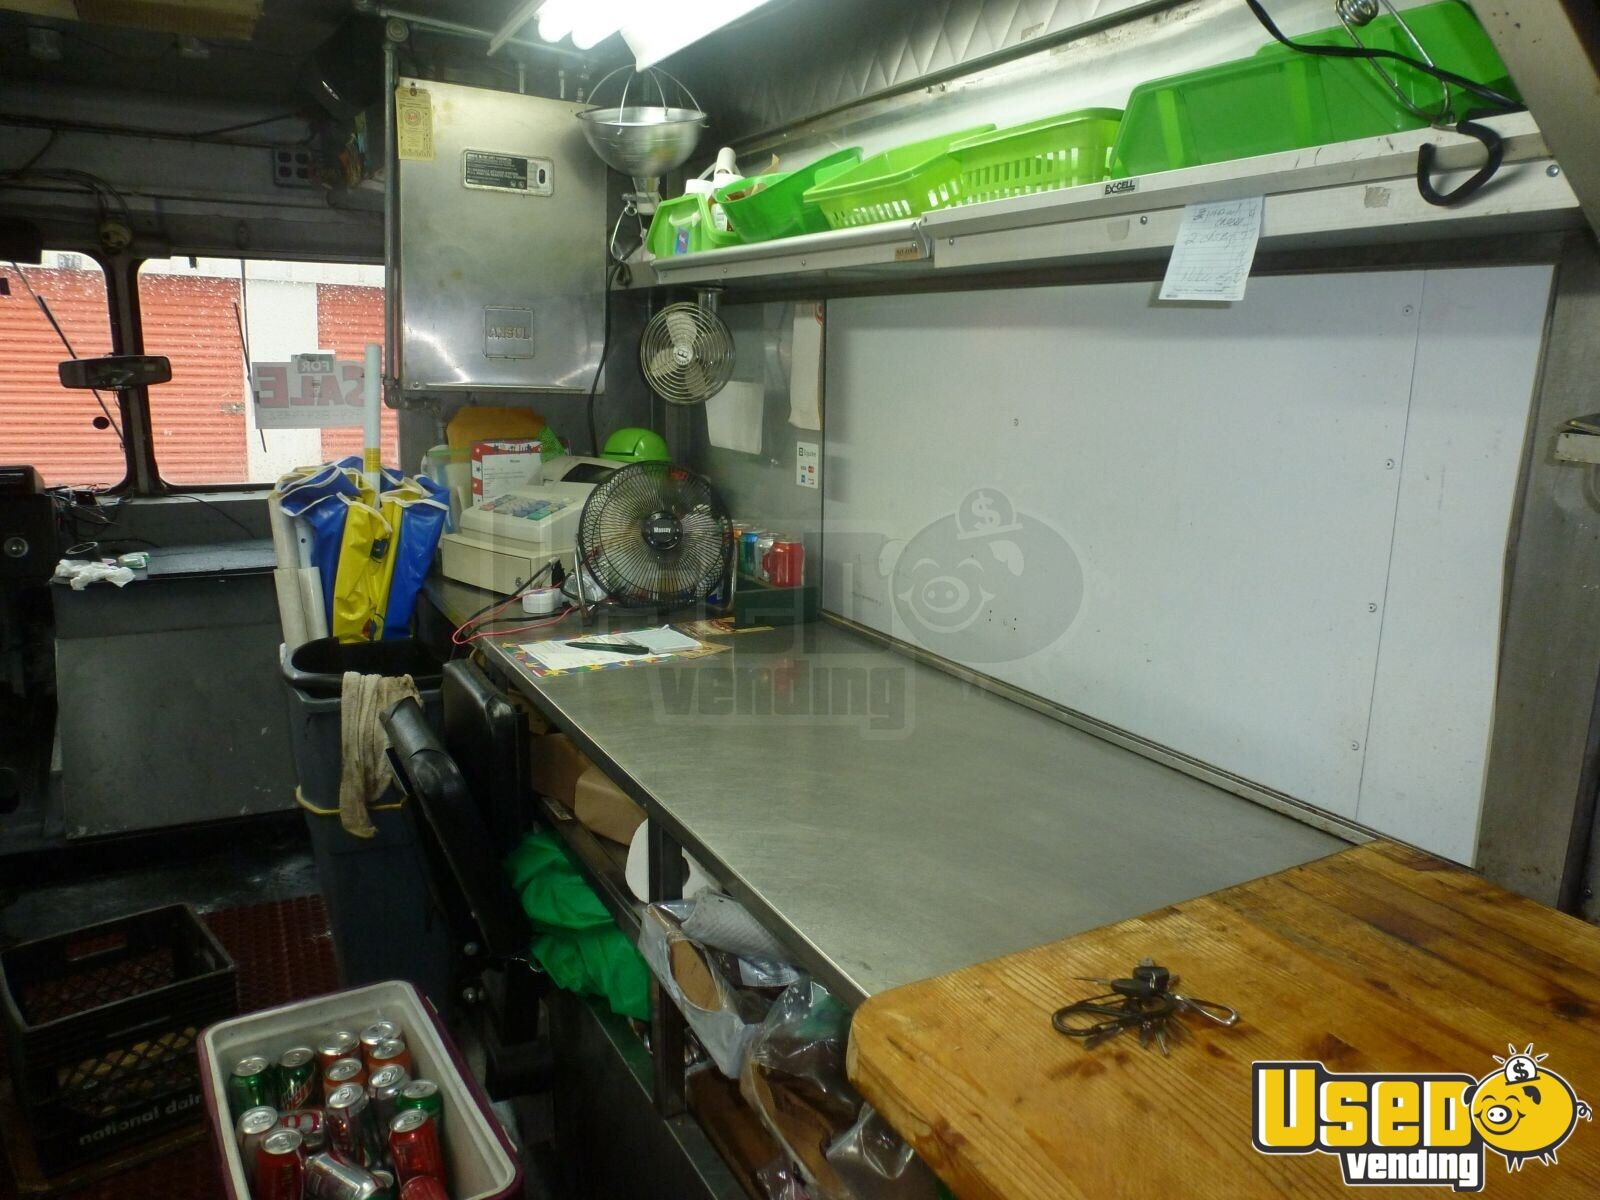 GM P130 Food Truck for Sale in Florida - 4